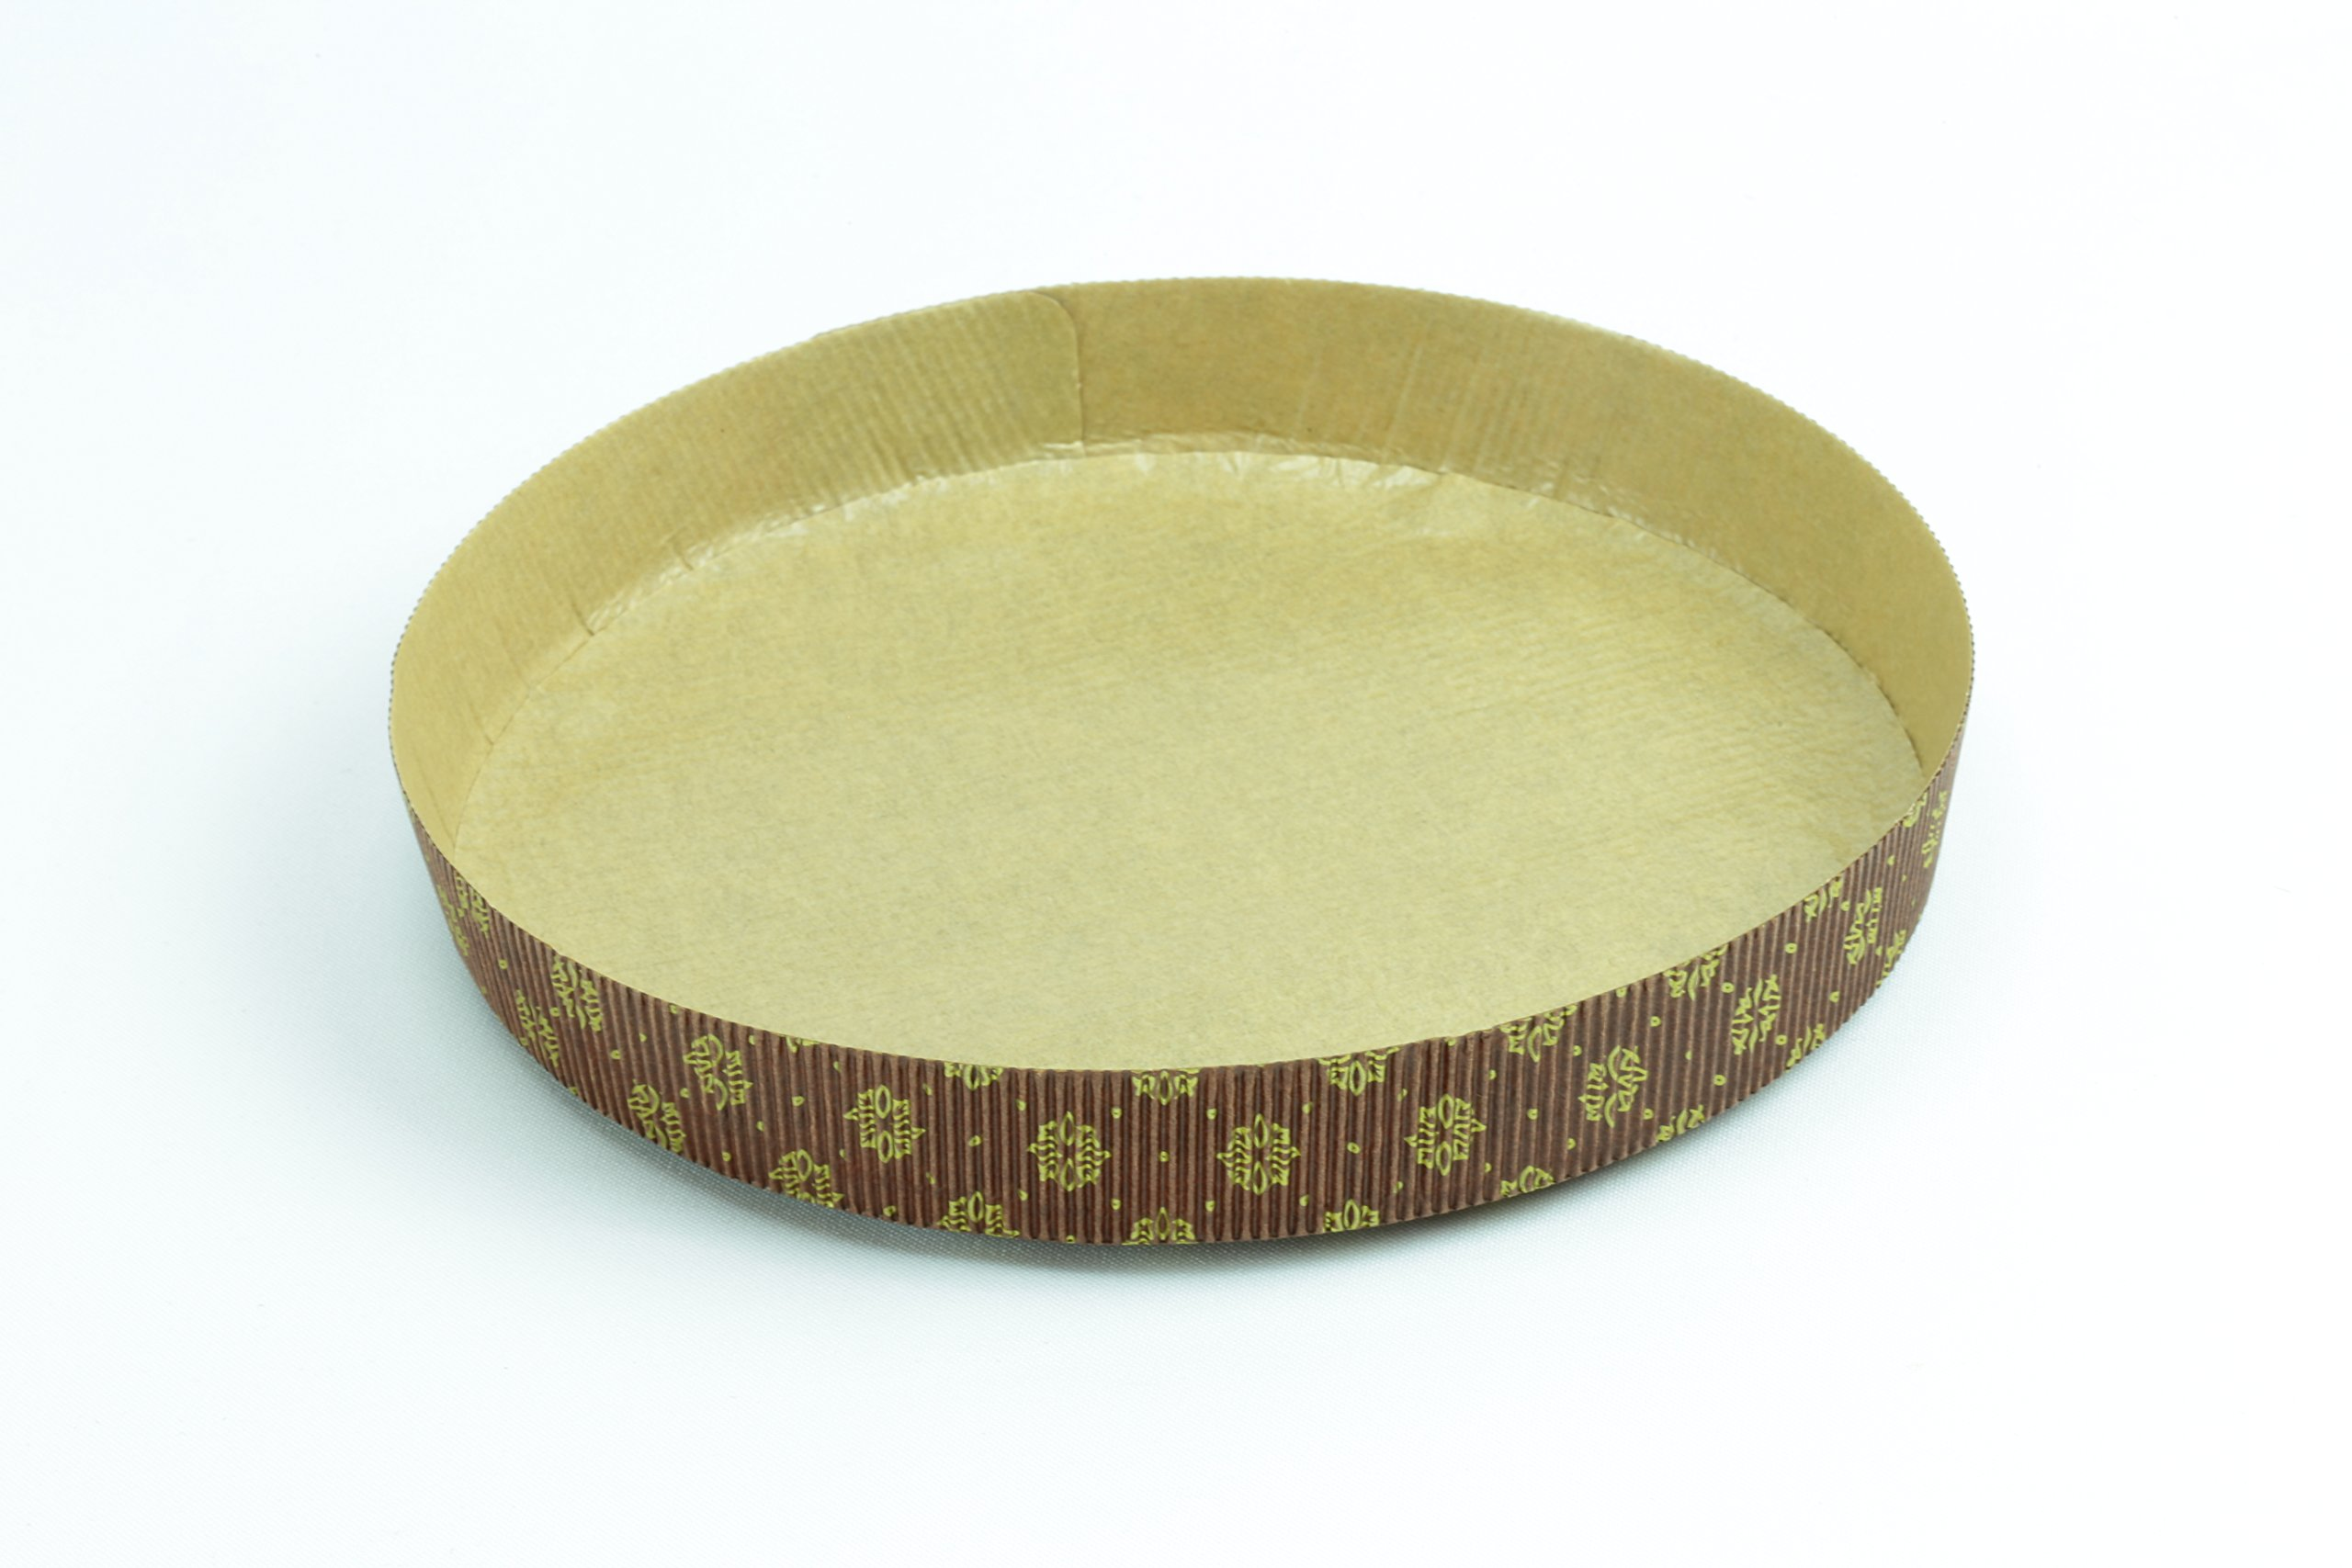 Round Tart/Quiche Pans, Use It For Your Chocolate Cakes Or Jelly Tarts!Apple Pie, Any Kind Of Pies - 8.2'' x 1.18'' - Set of 12